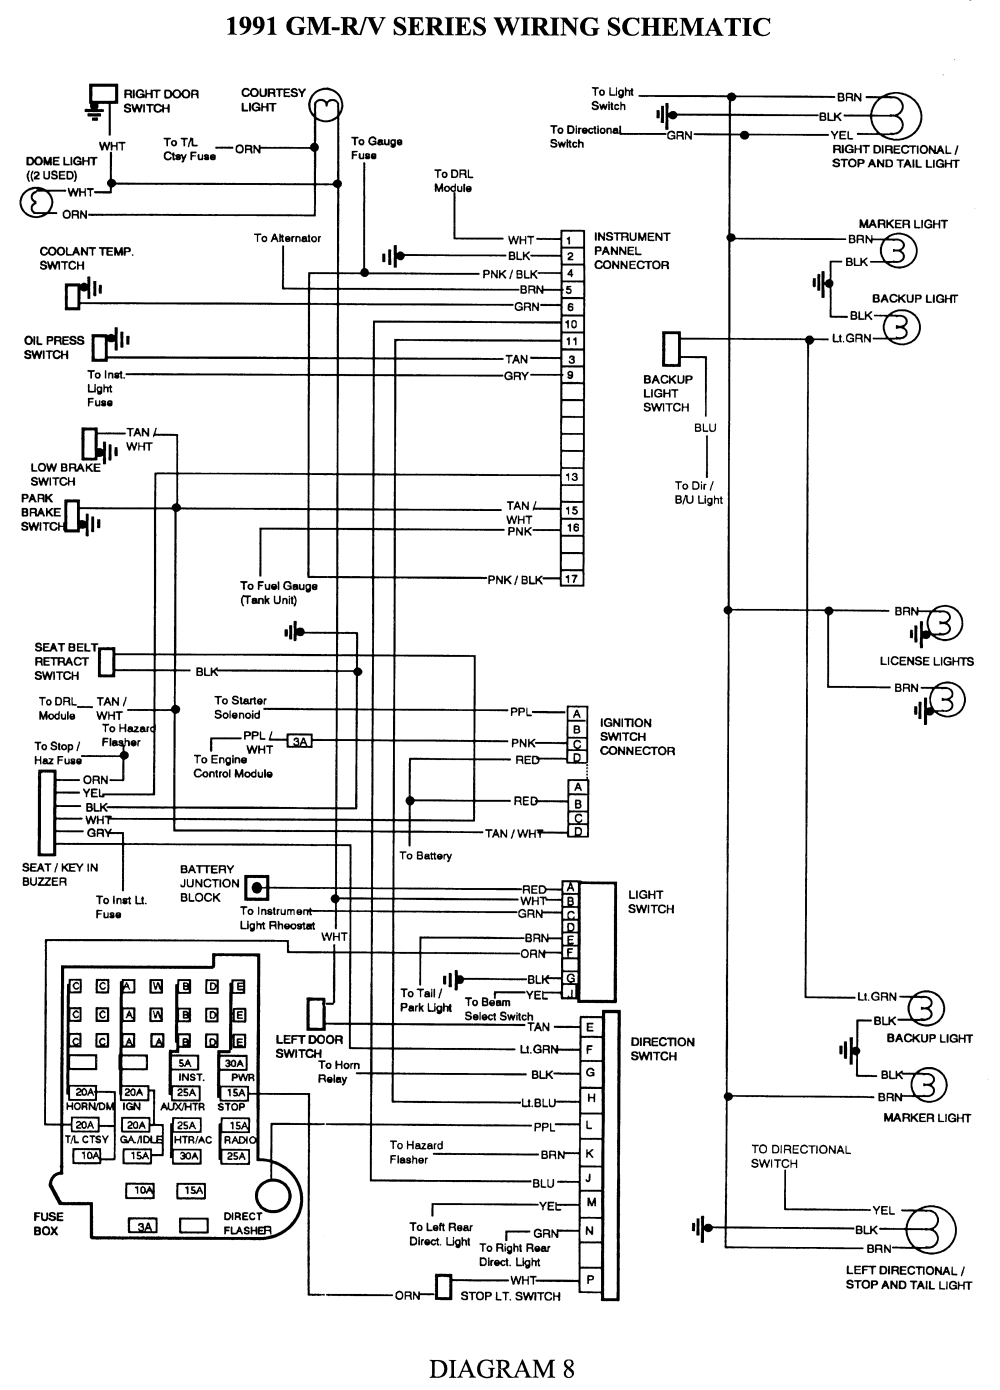 diagram] s10 blazer wiring diagram full version hd quality wiring diagram -  zodiagramm.argiso.it  zodiagramm.argiso.it